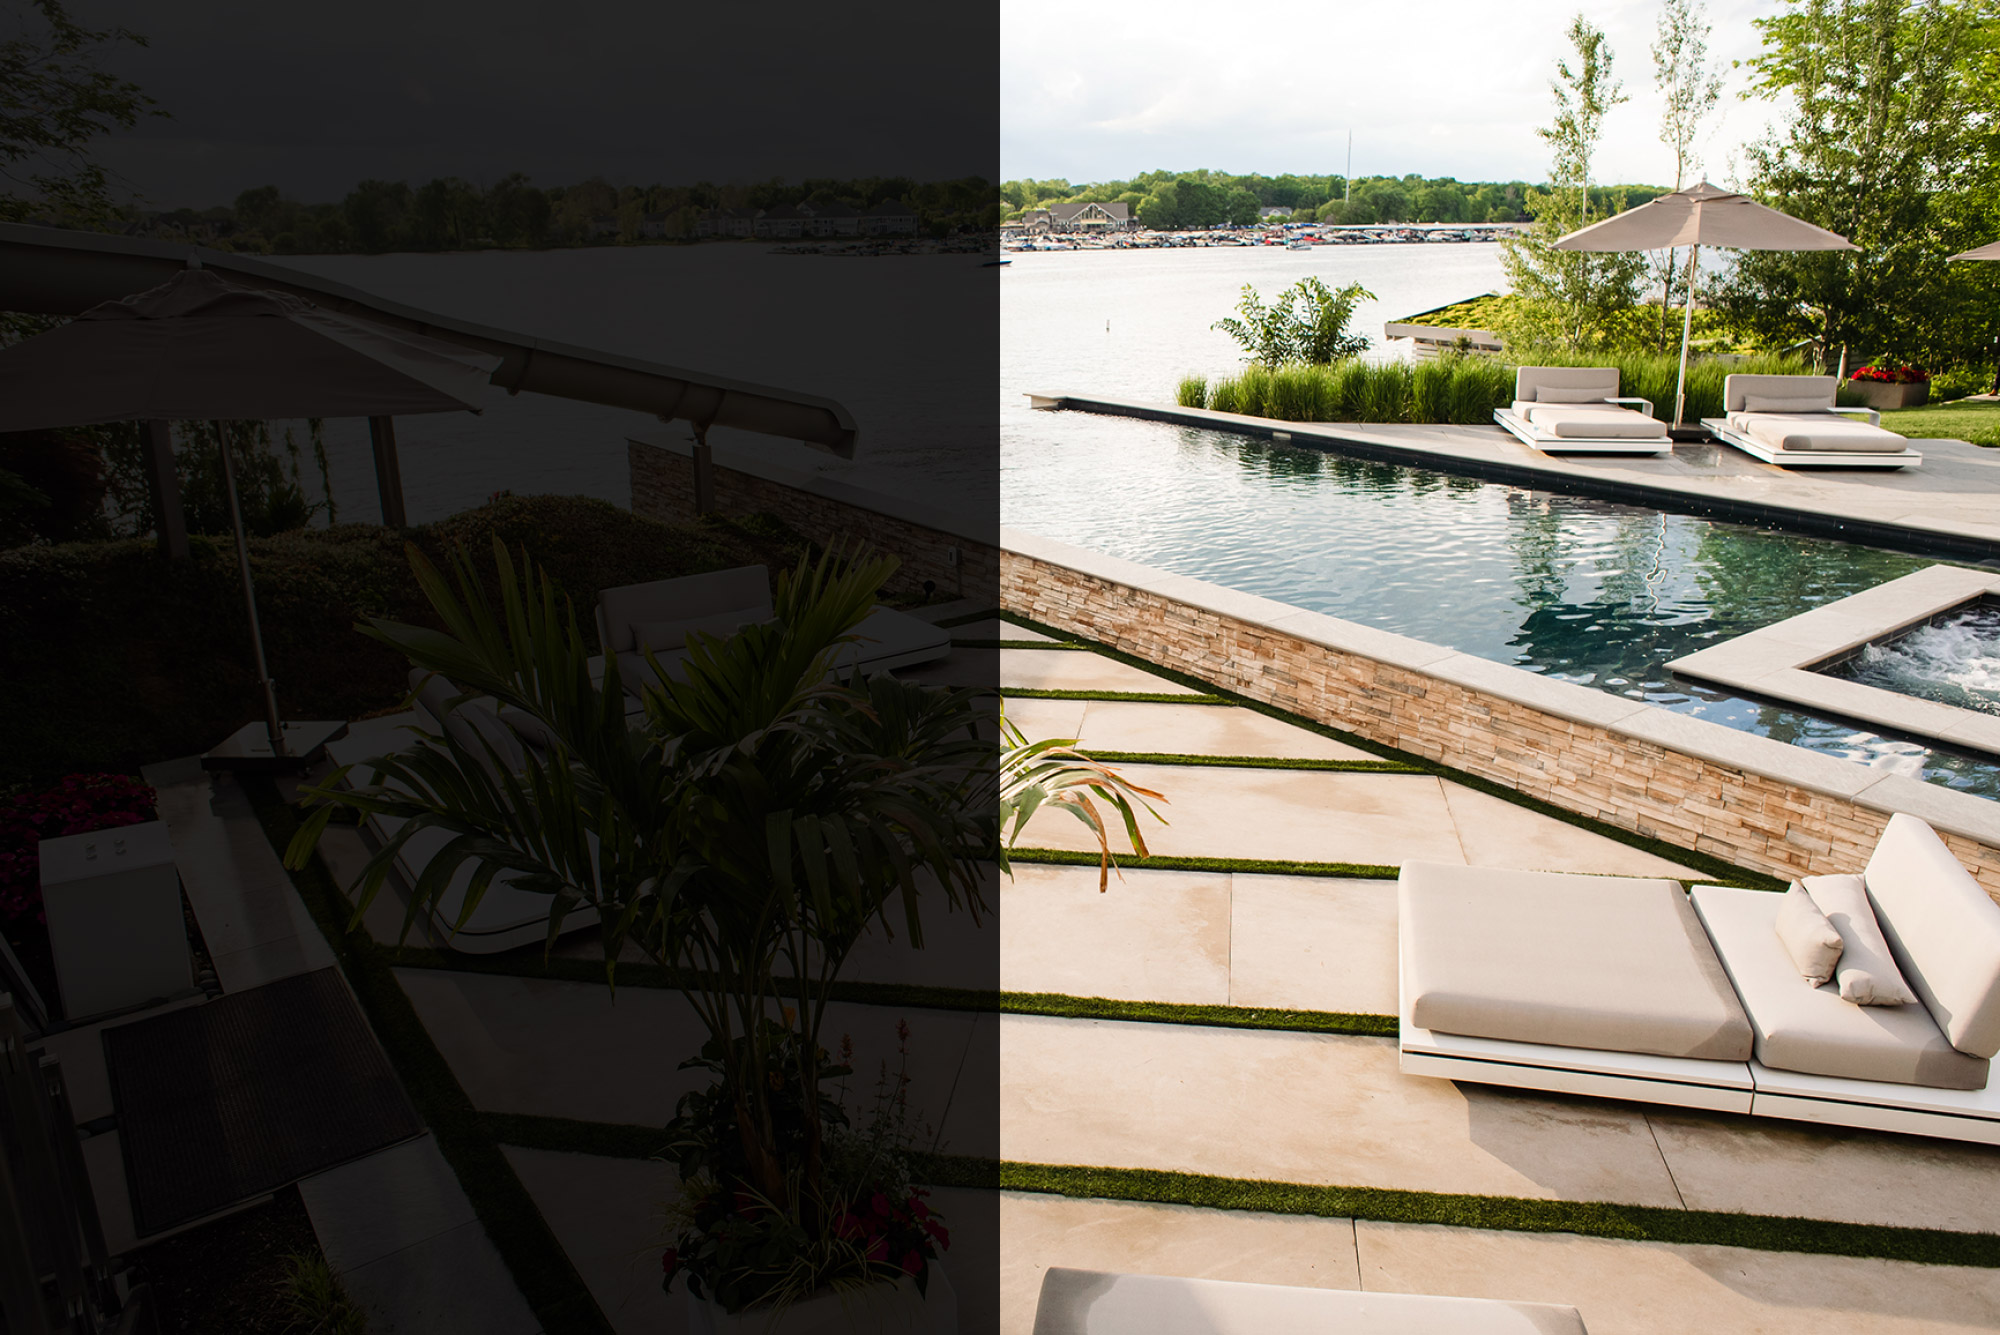 Infinity pool, stone wall and patio by OEG